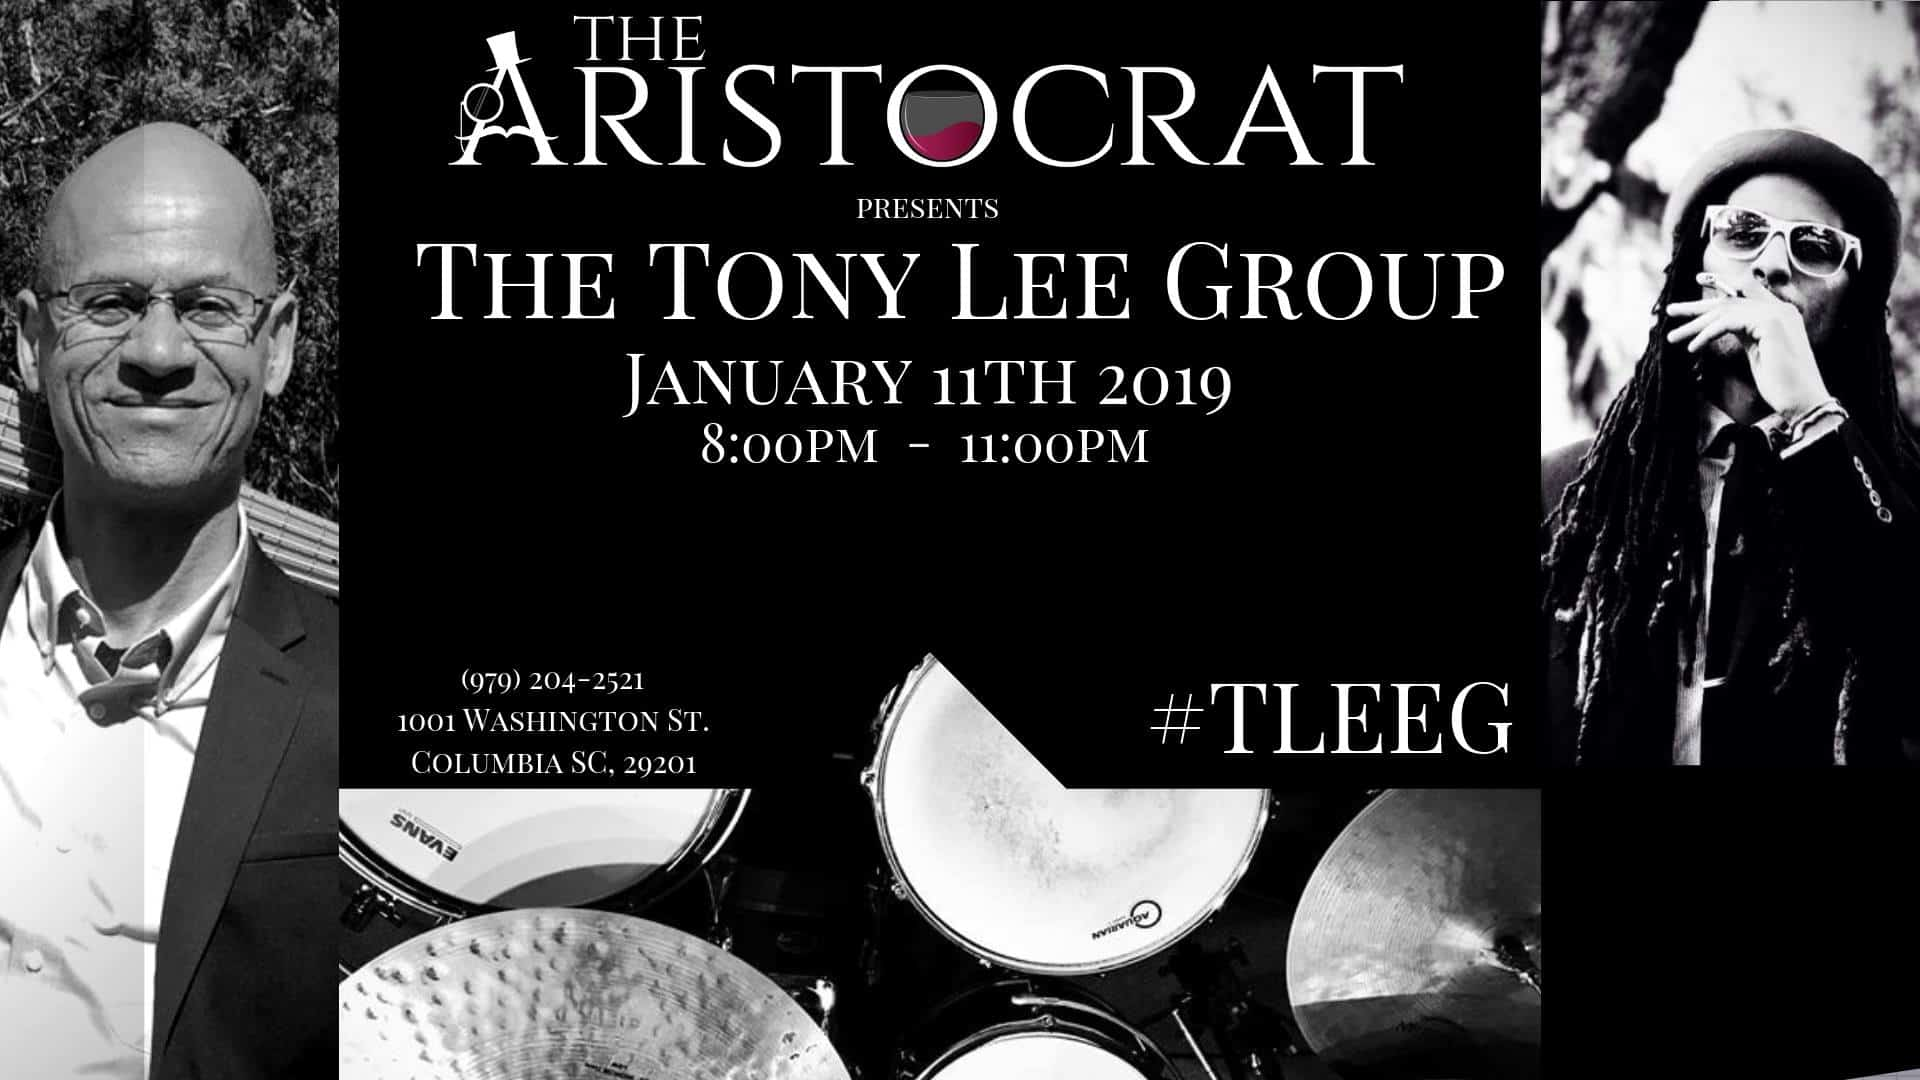 The Tony Lee Group